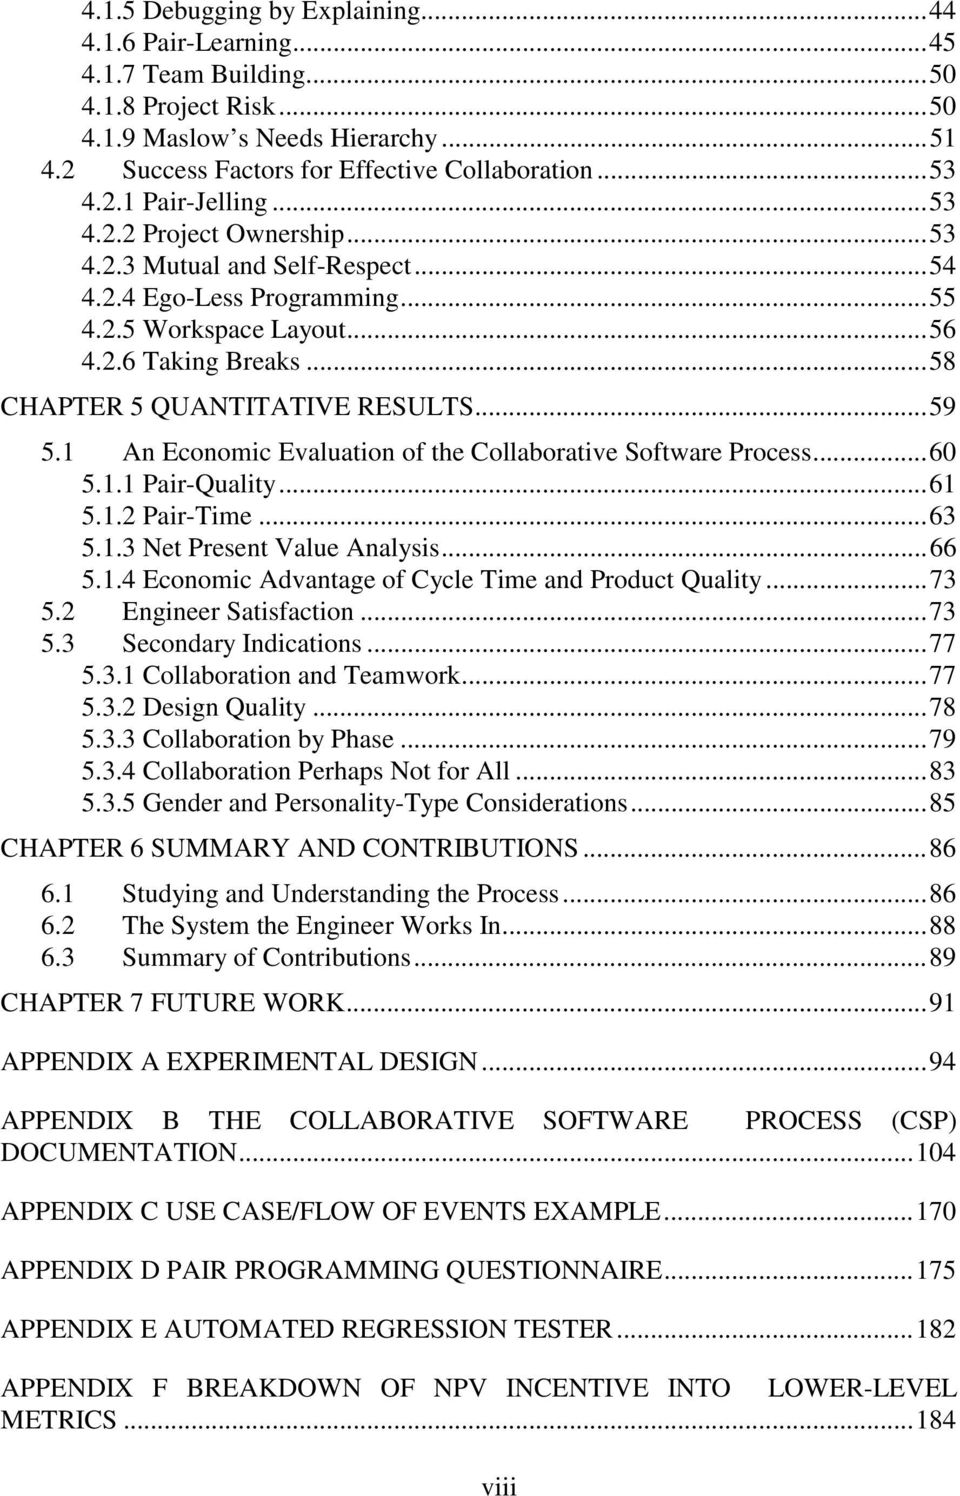 ..59 5.1 An Economic Evaluation of the Collaborative Software Process...60 5.1.1 Pair-Quality...61 5.1.2 Pair-Time...63 5.1.3 Net Present Value Analysis...66 5.1.4 Economic Advantage of Cycle Time and Product Quality.